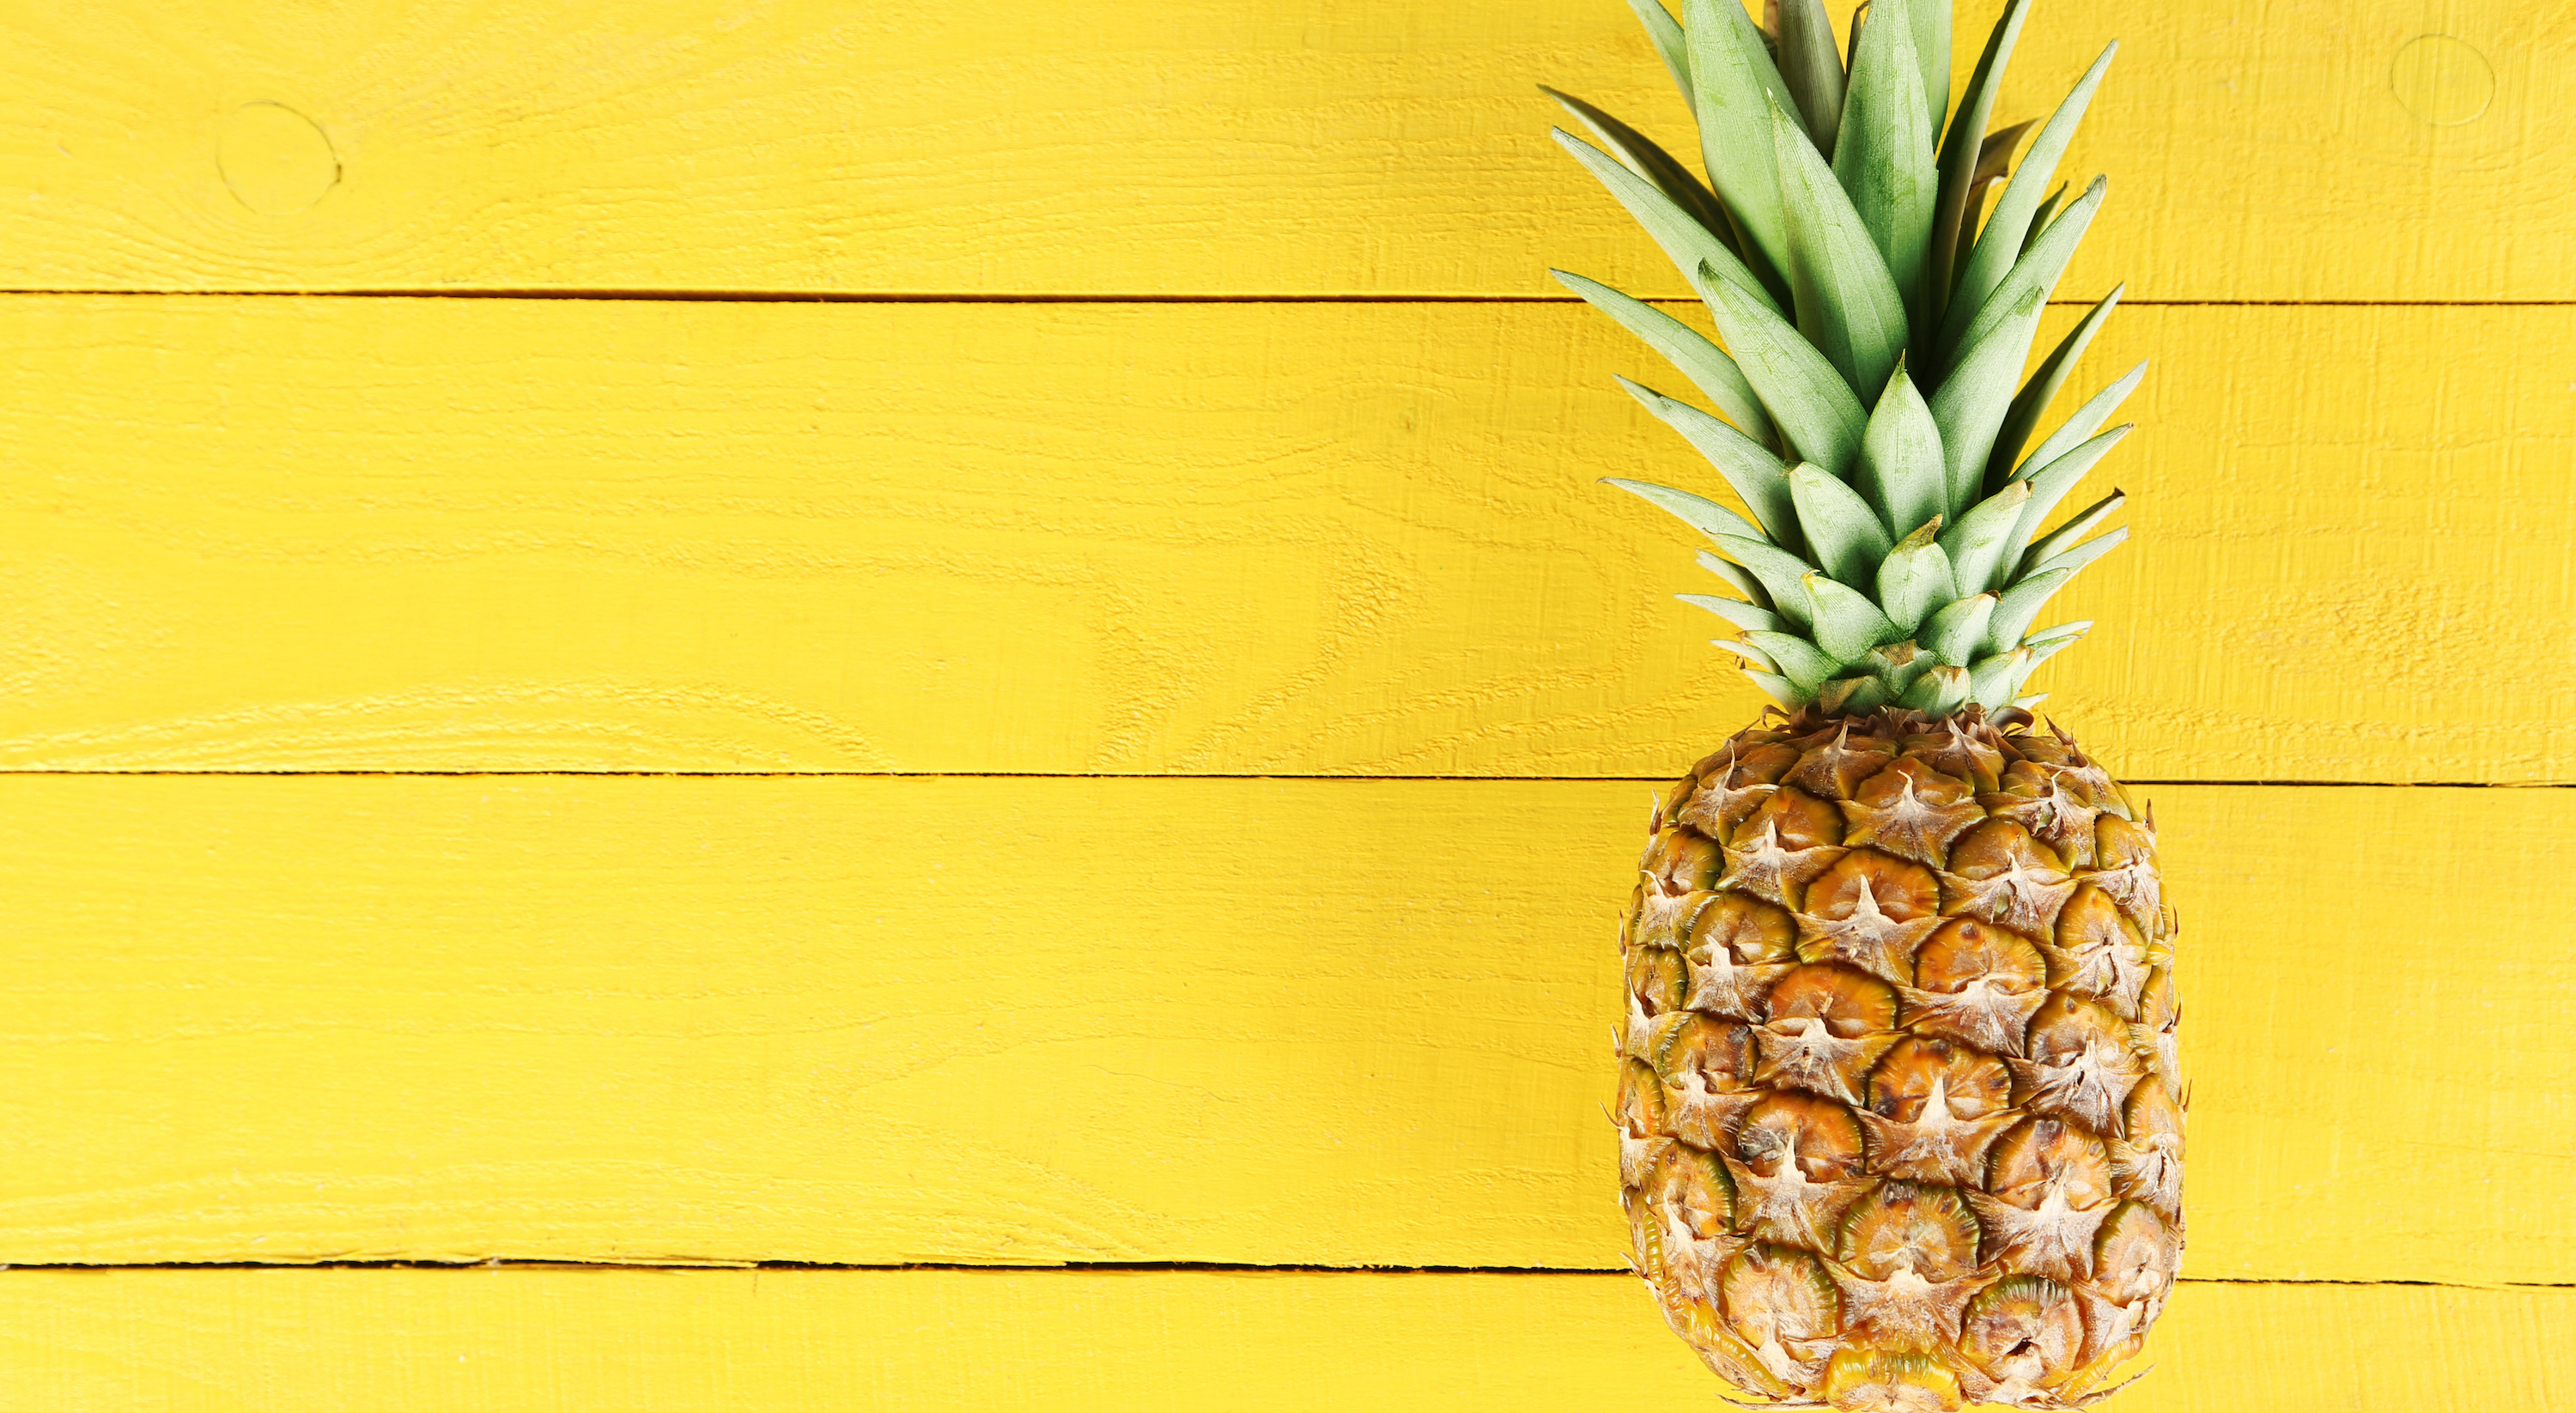 Details Make The Difference find your pineapple: how the little details make all the